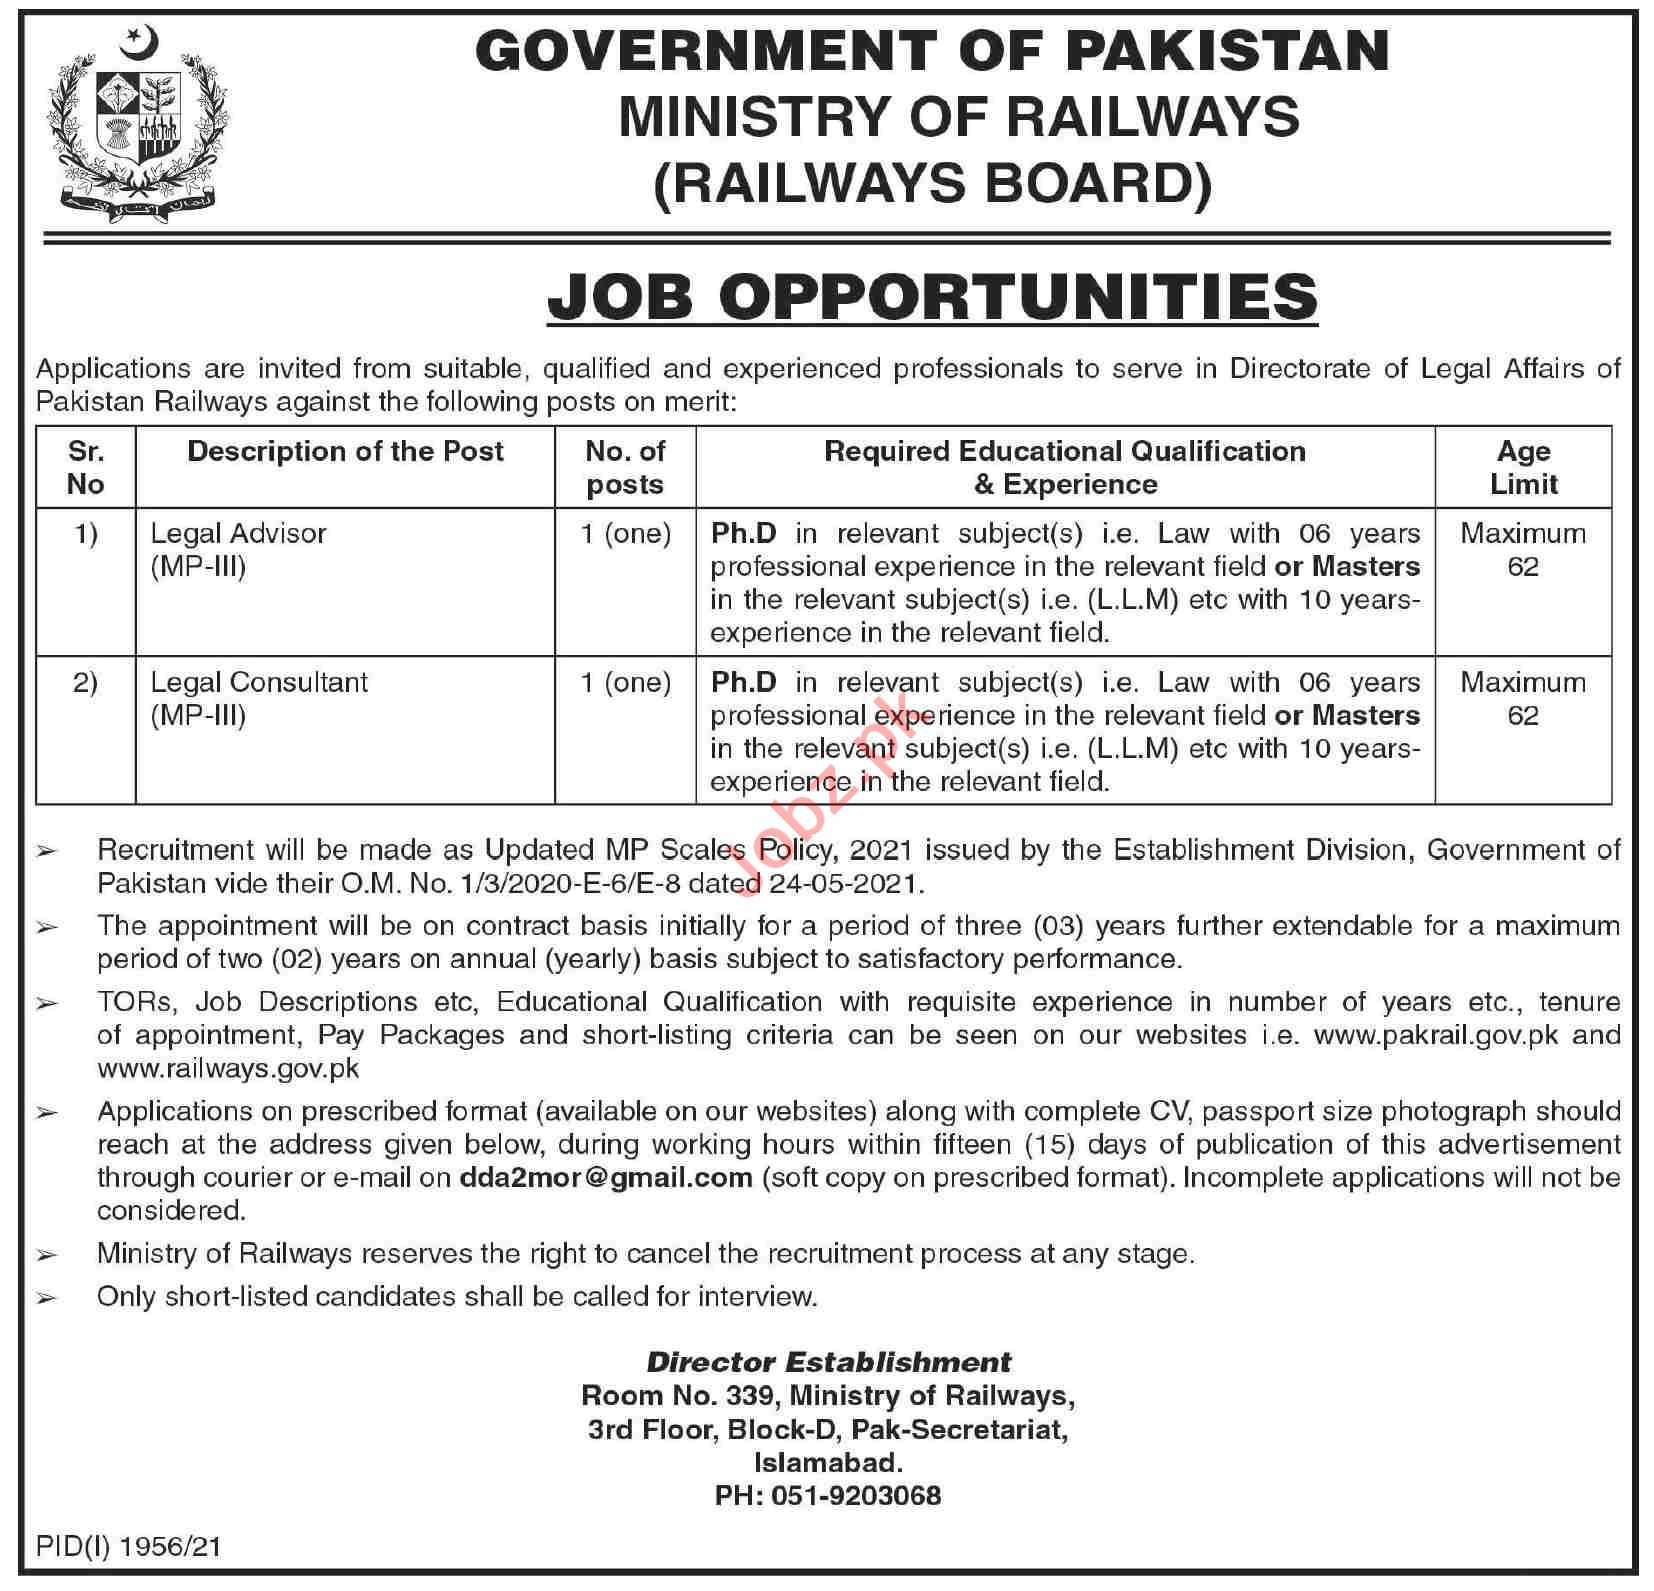 Railways Board, Ministry of Railways Islamabad, Government of Pakistan is seeking for the services from experienced and committed candidates for the posts of Legal Advisor, Legal Consultant.